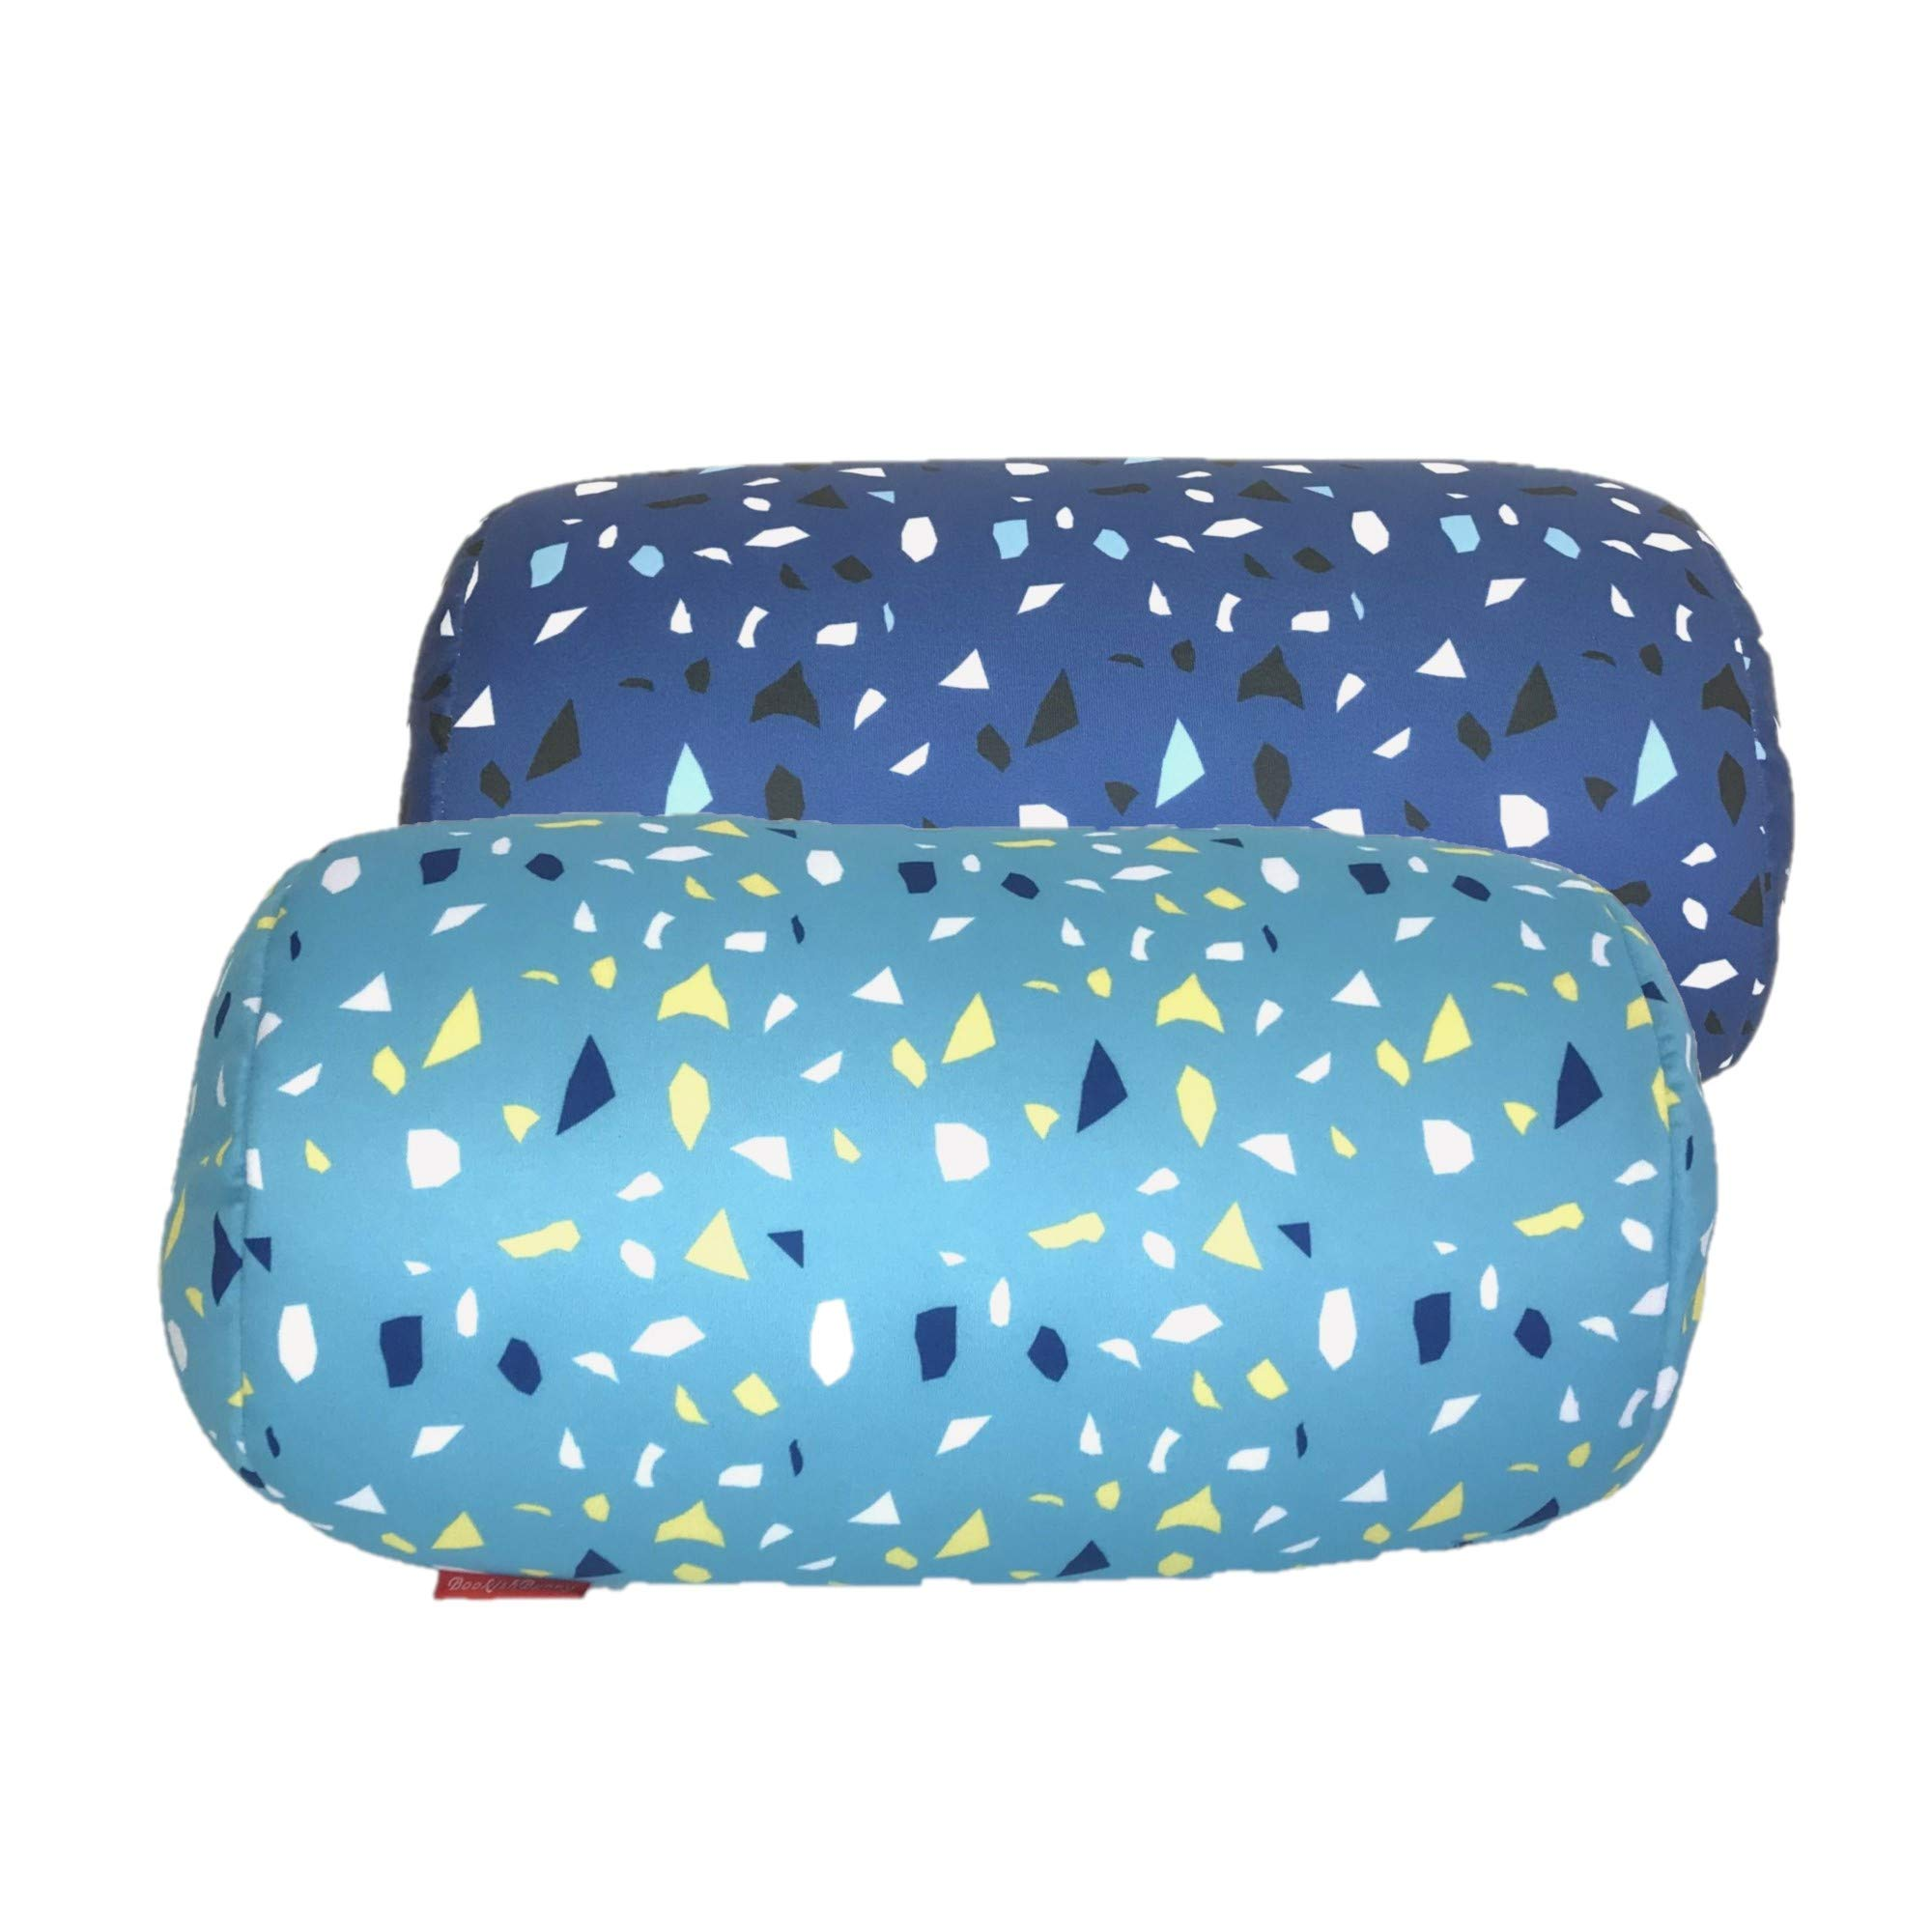 Bookishbunny 2pk Micro Bead Bolster Tube Pillow Cushion for Car Sofa Bed Room Decoration, Back Neck Head Body Support - Squishy and Cool Fabric, Odorless, Hypoallergenic (ConfettiLight/Blue)